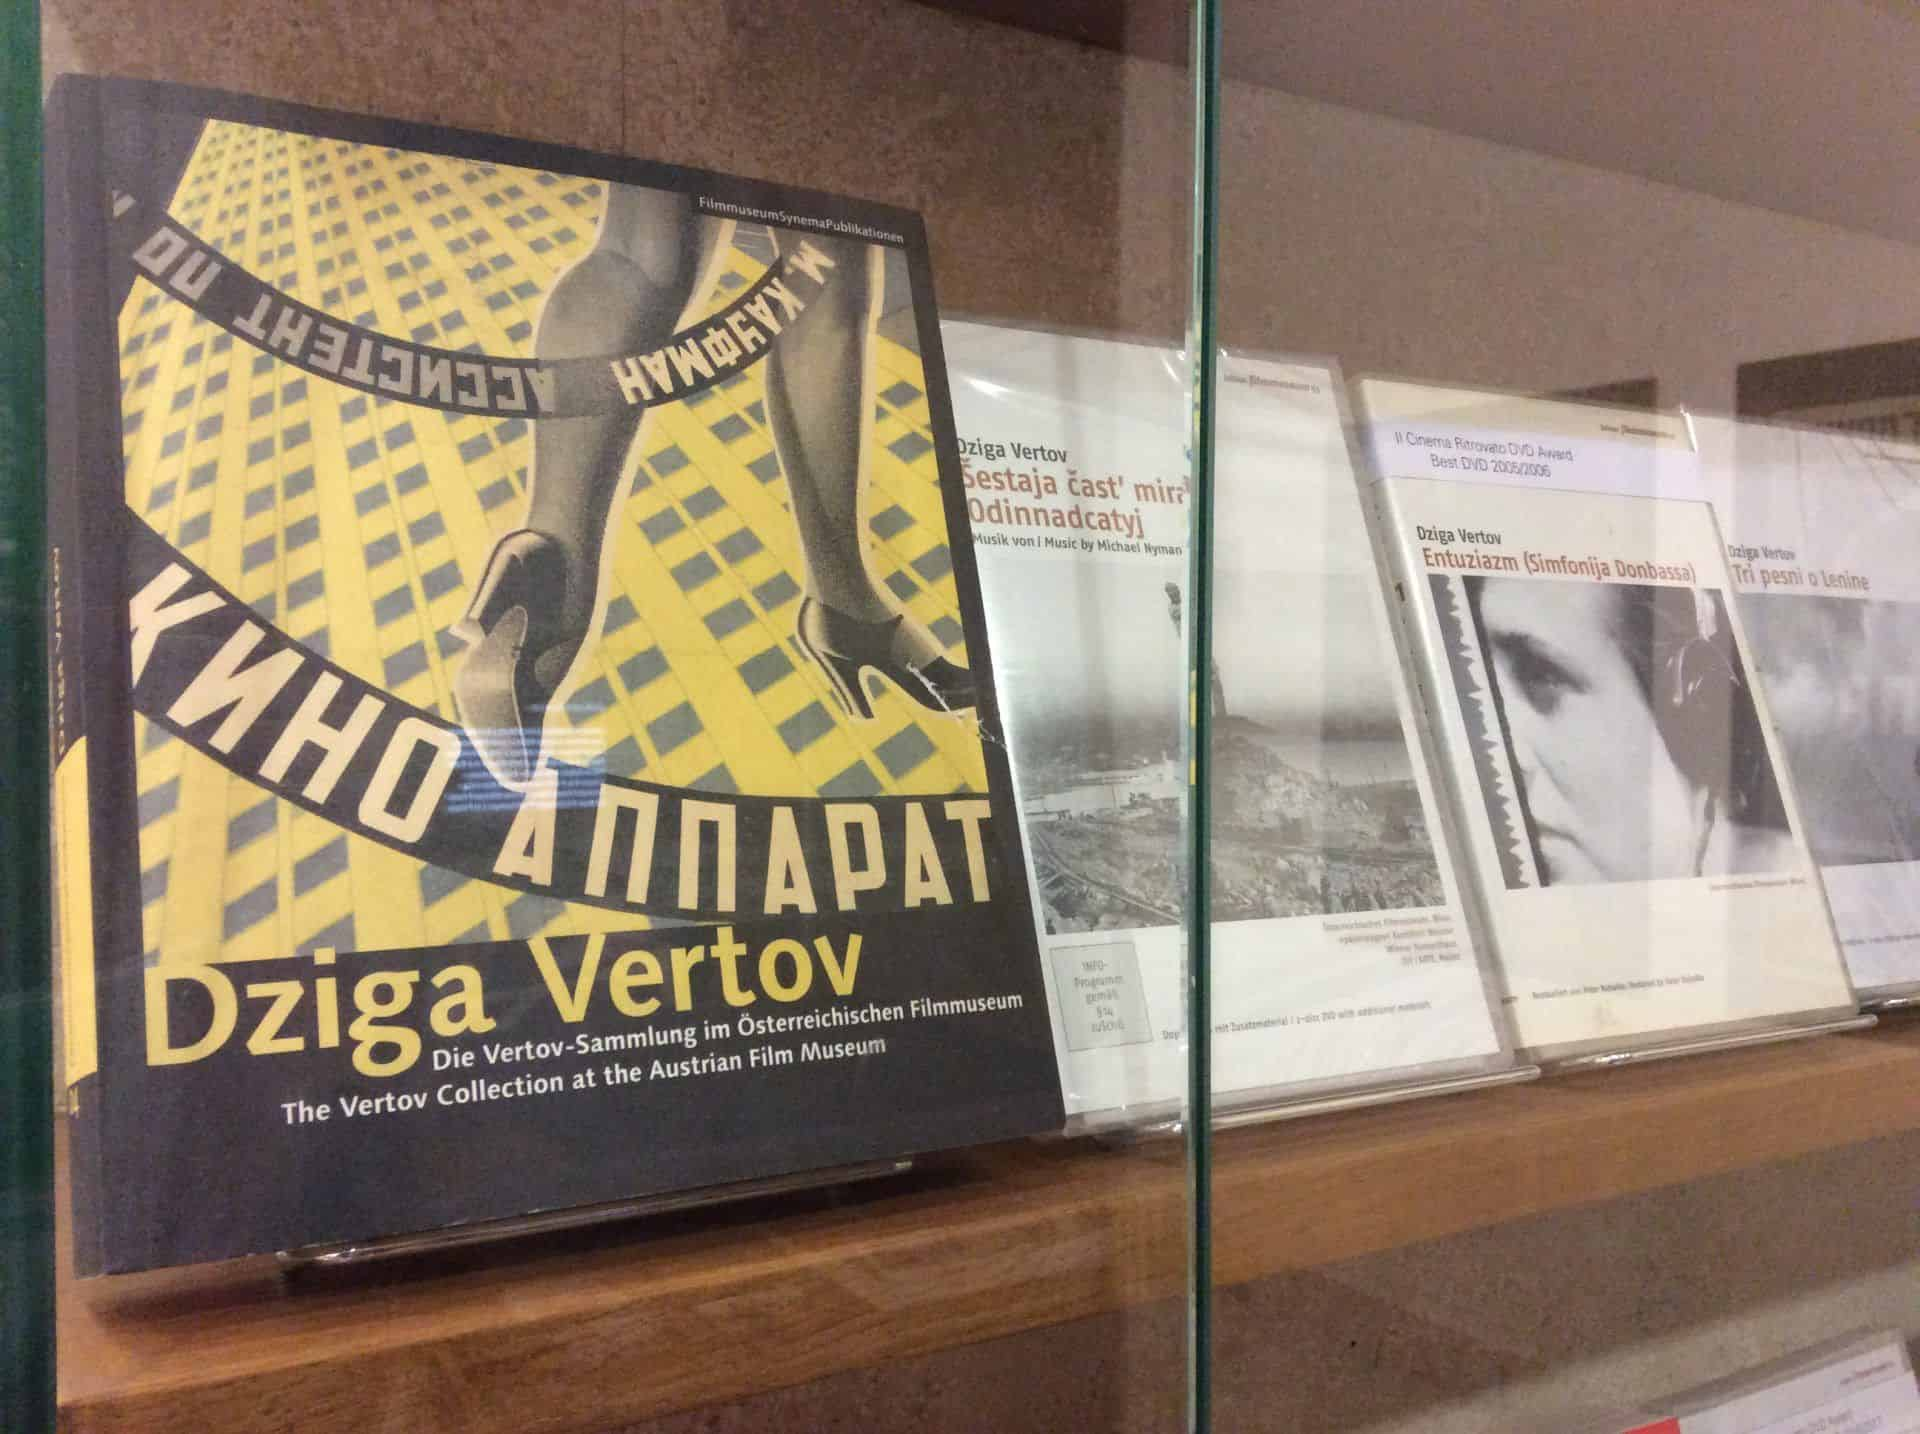 Poster exhibition in the Austrian Museum of Cinema in Vienna. Photo: Julia Abramova, 2018.